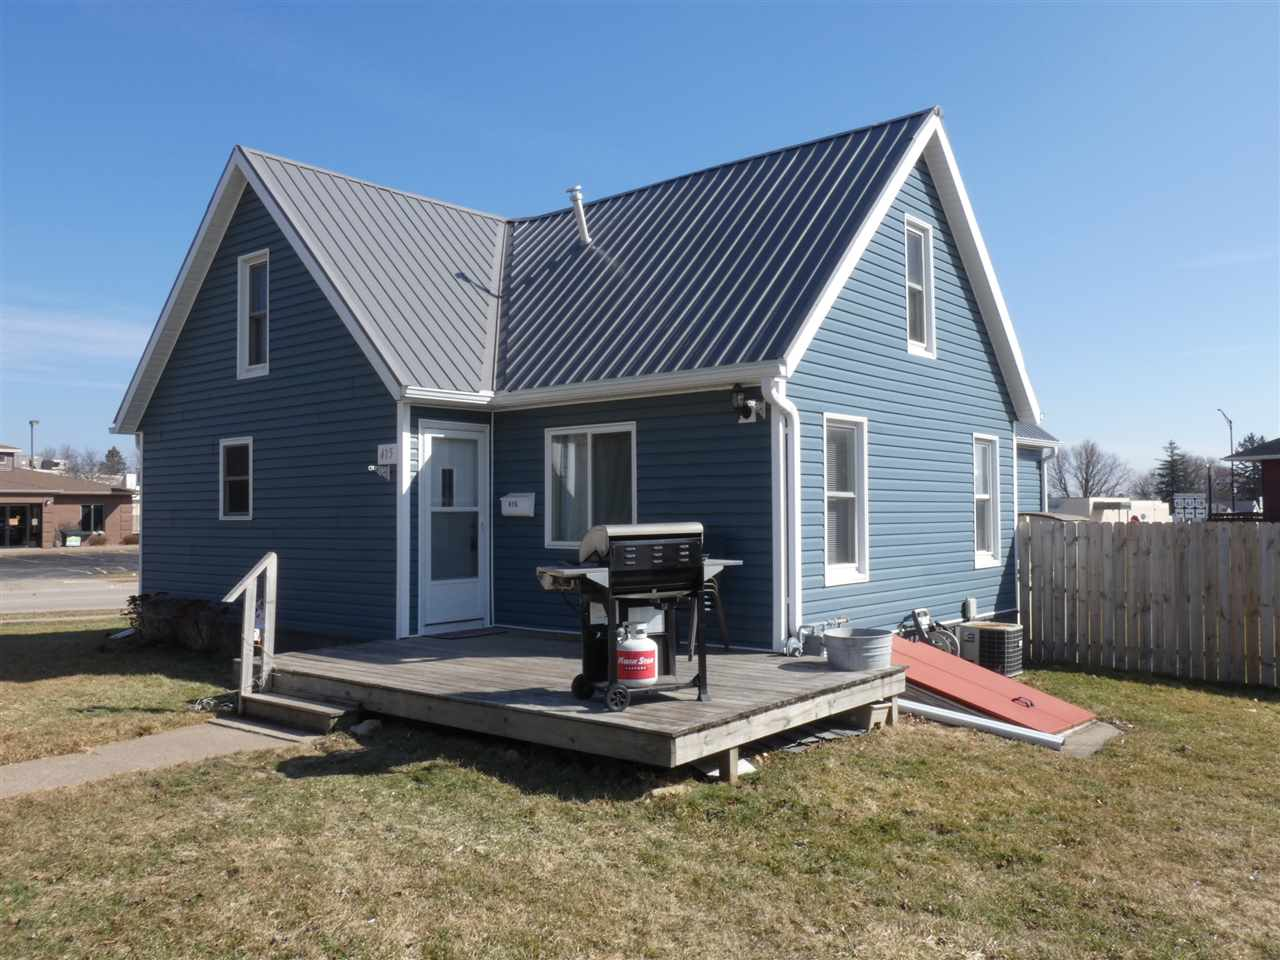 415 Madison St, Fennimore, Wisconsin 53809, 3 Bedrooms Bedrooms, ,2 BathroomsBathrooms,Single Family,For Sale,415 Madison St,1.5,1903871